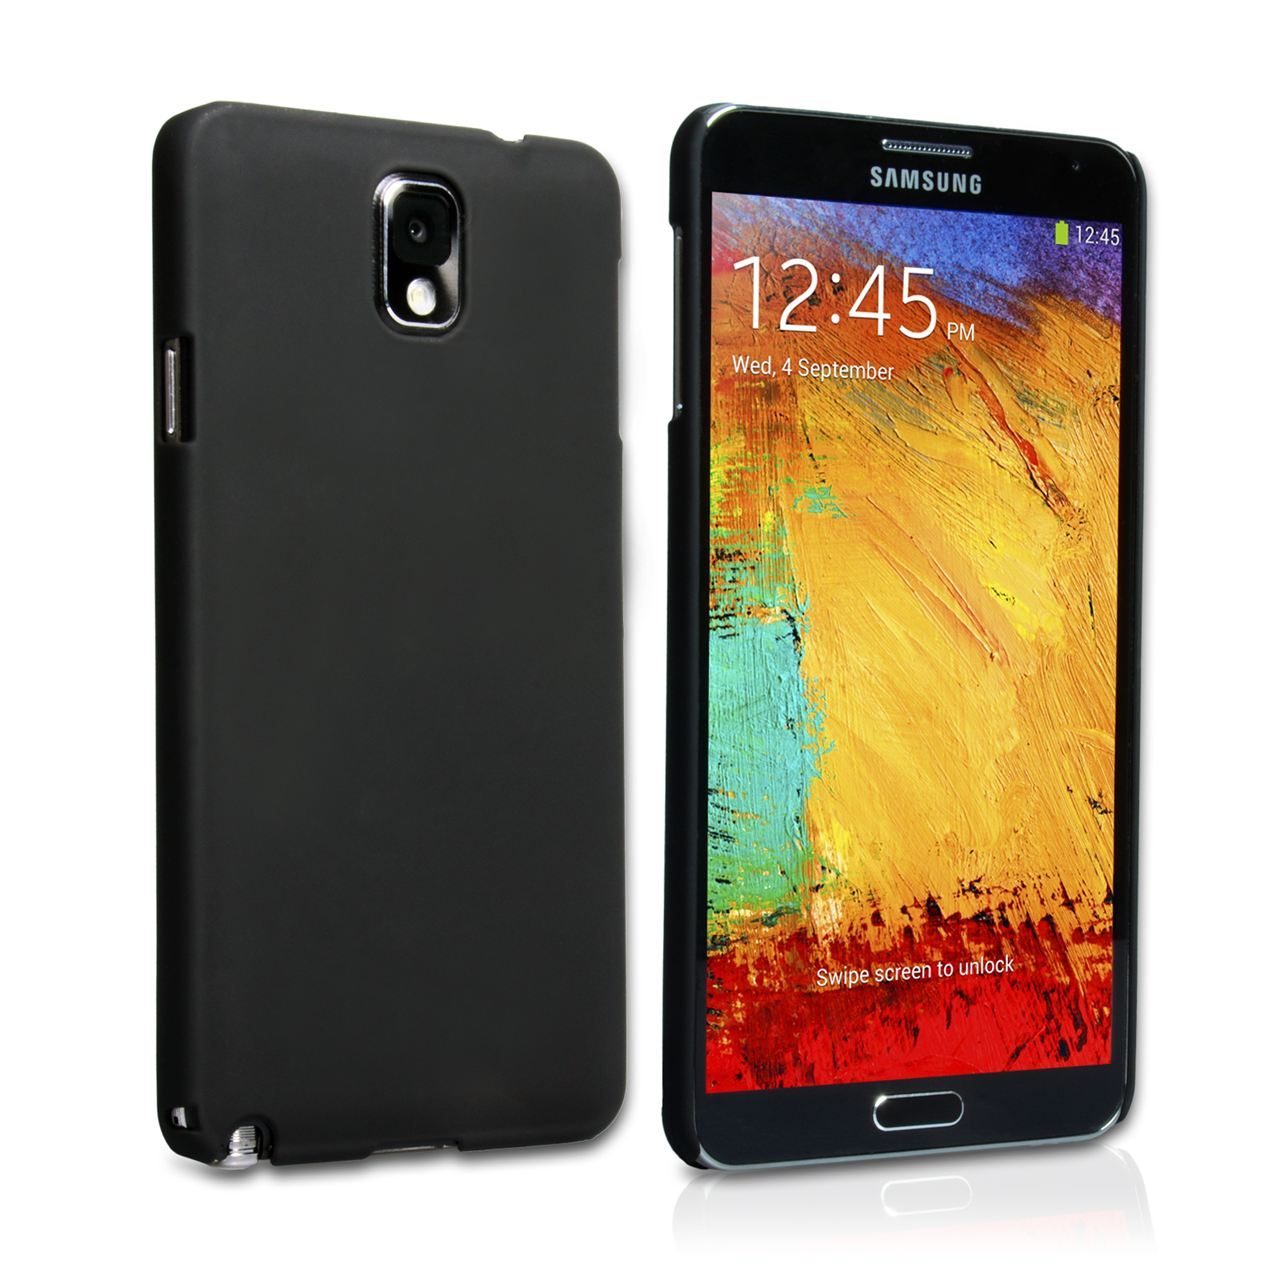 YouSave Accessories Samsung Galaxy Note 3 Hybrid Case - Black